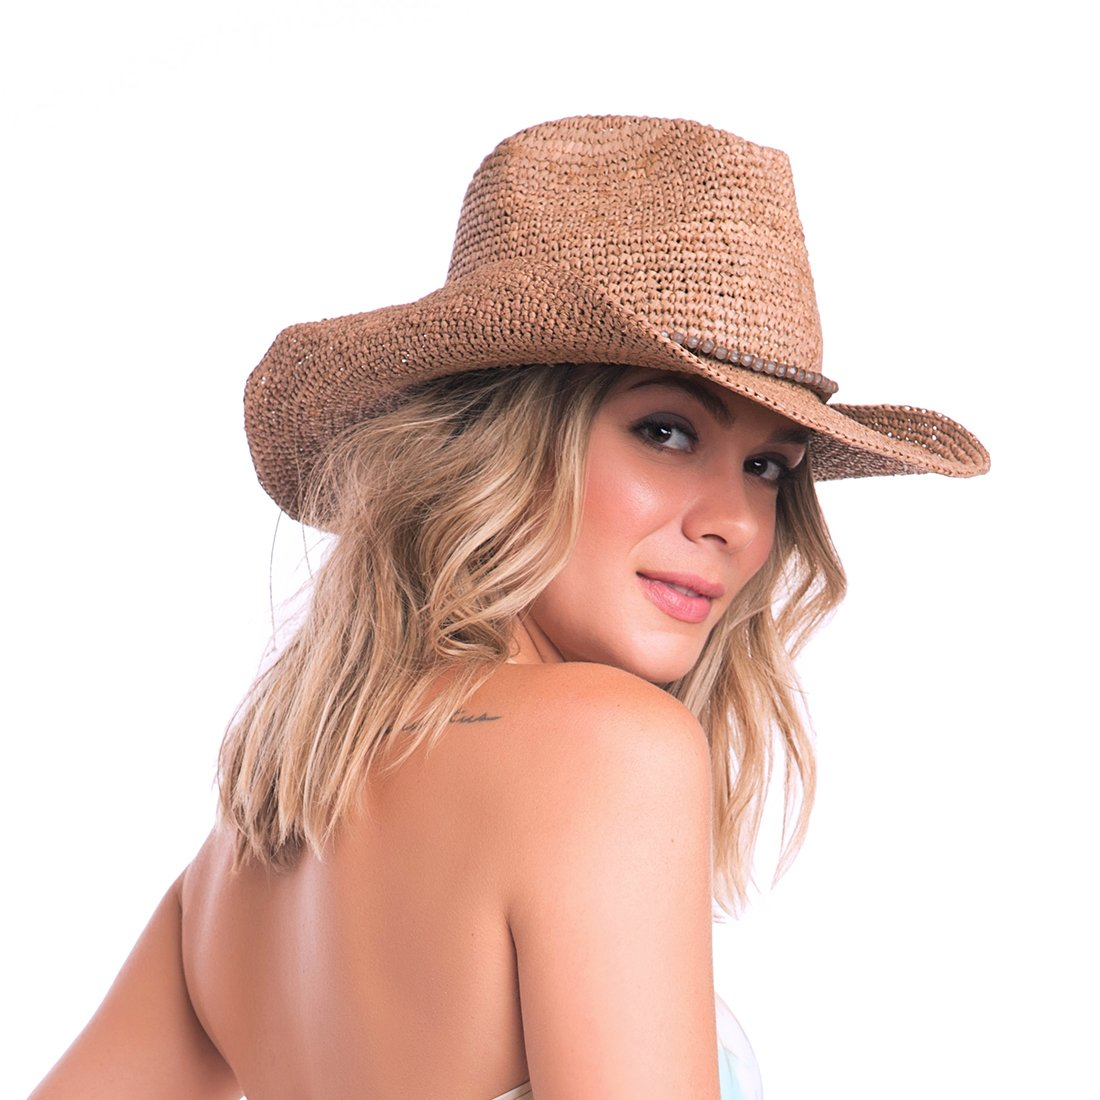 ale by Alessandra Women's Cassidy Raffia Cowboy Hat with Beaded Trim and Memory Wire Brim, Cocoa, One Size by ale by Alessandra (Image #3)